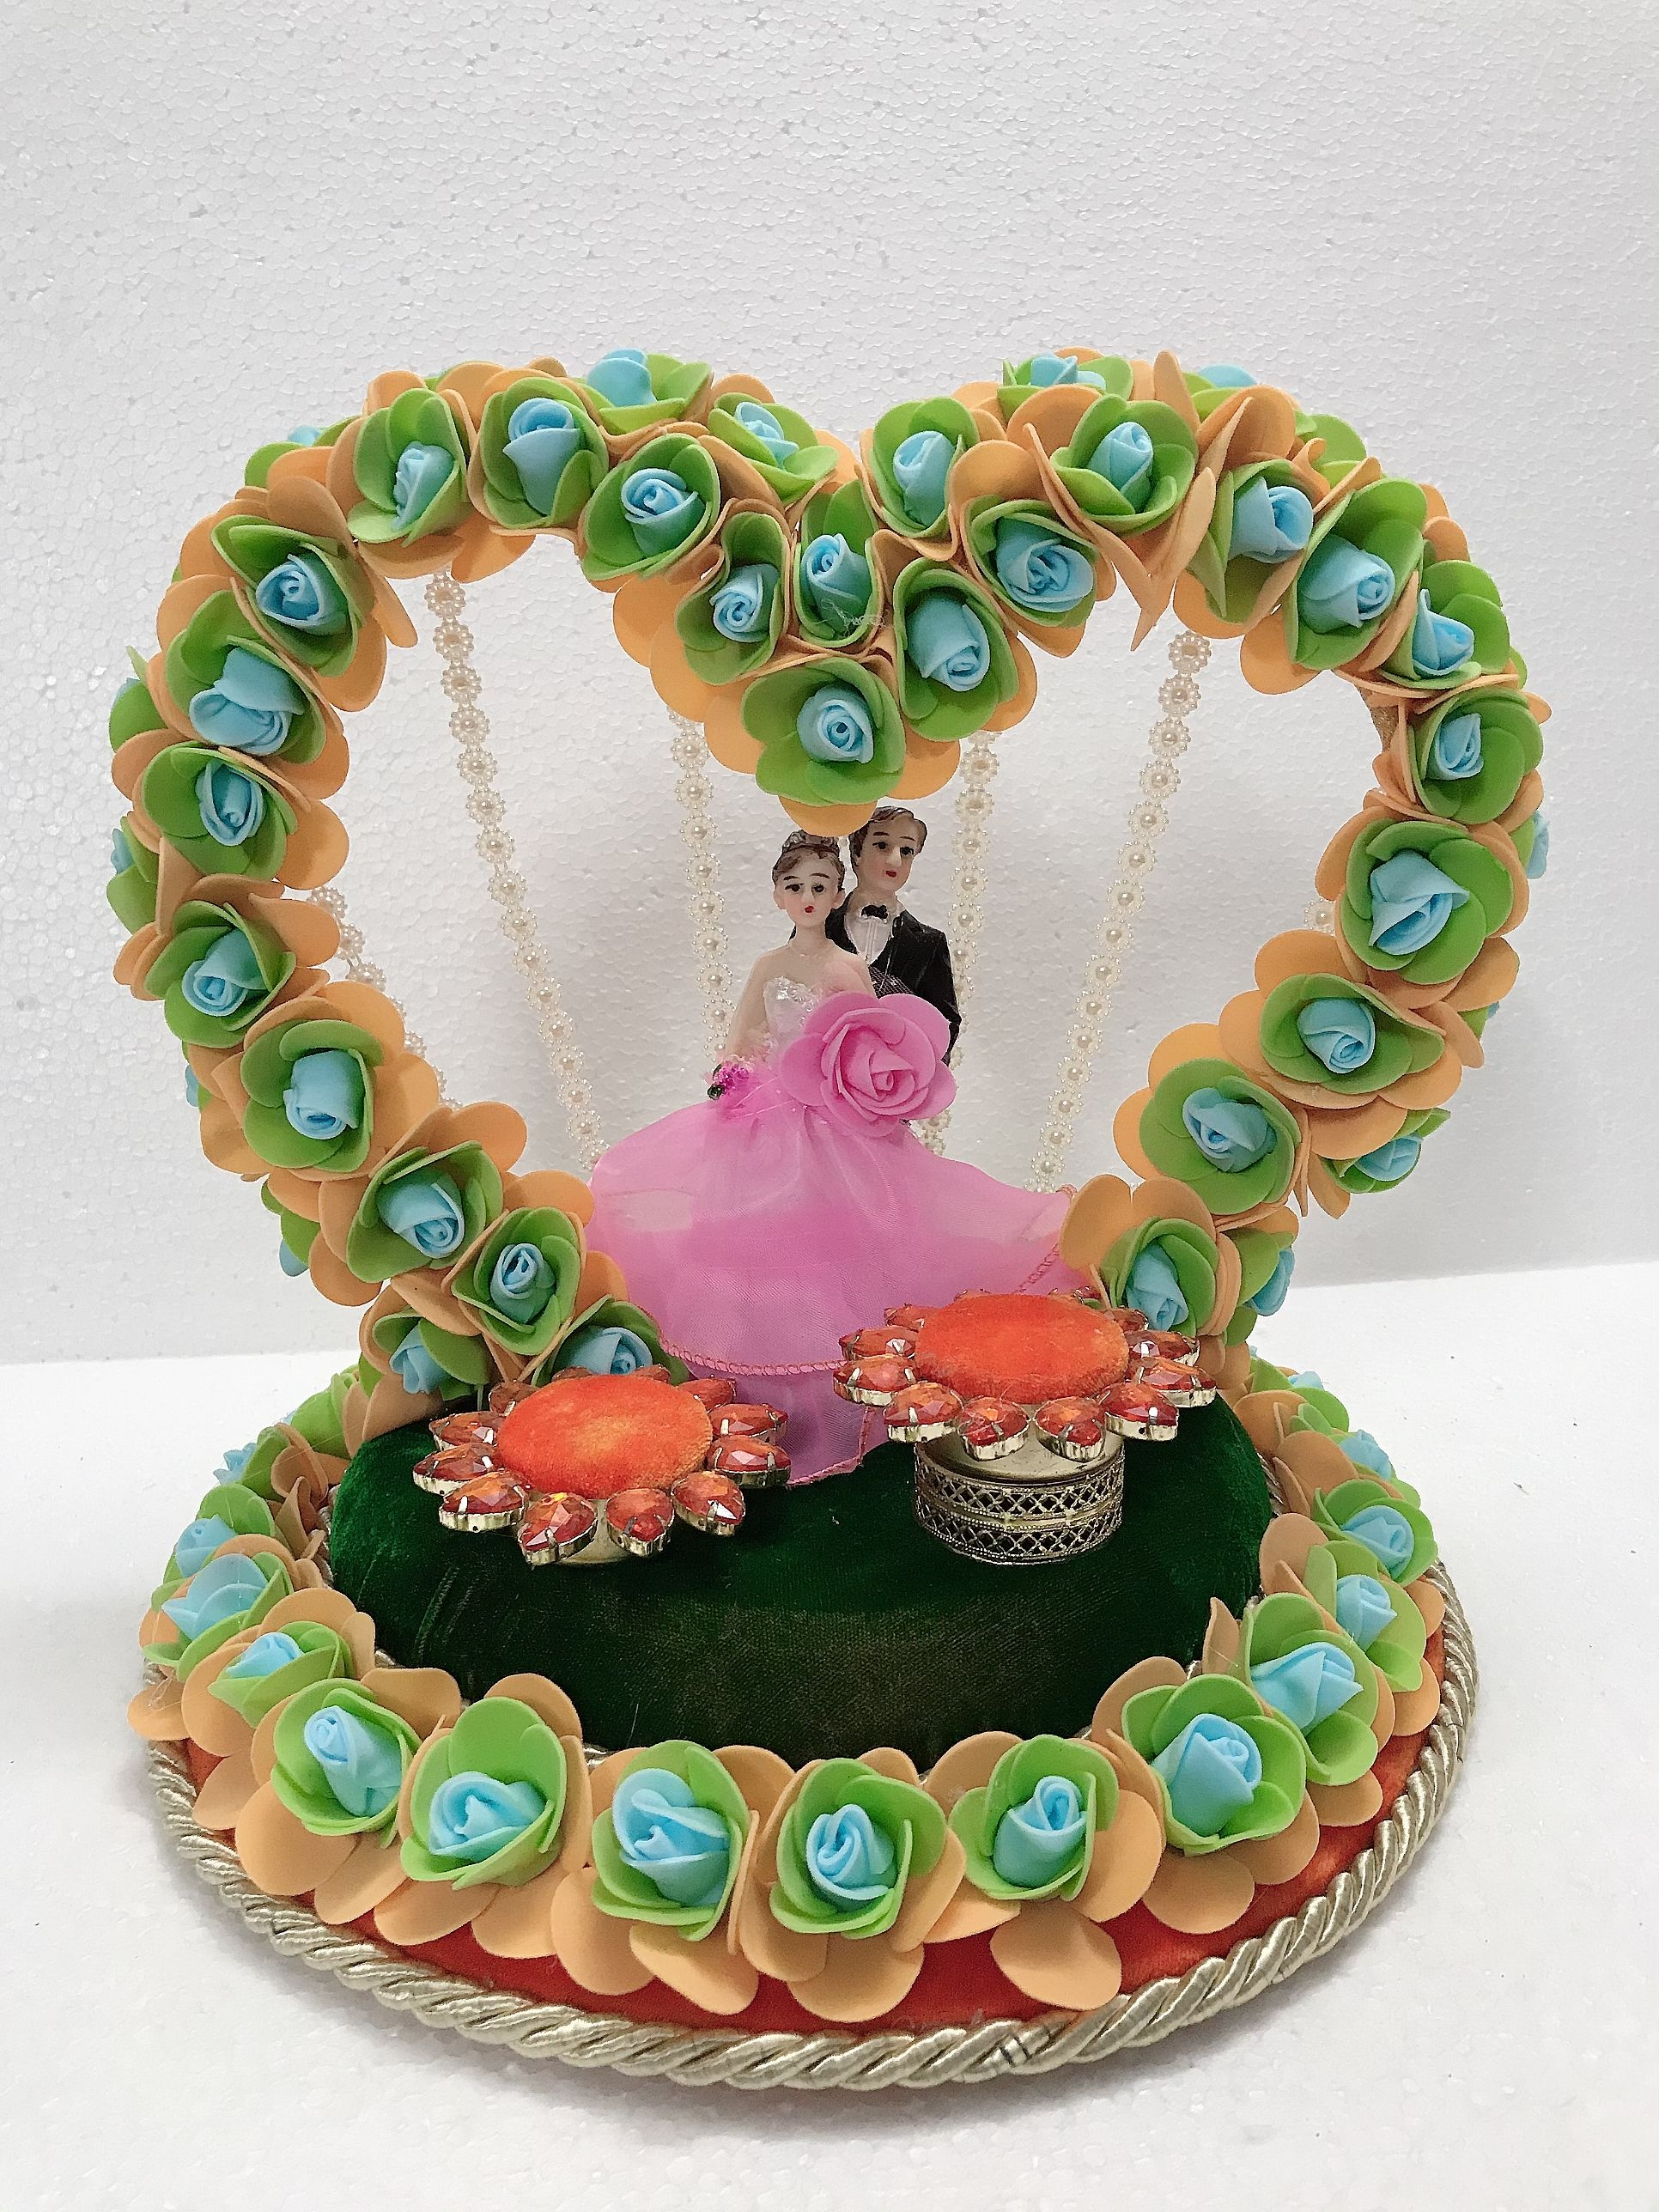 Engagement rings tray Creative wedding gifts, Engagement